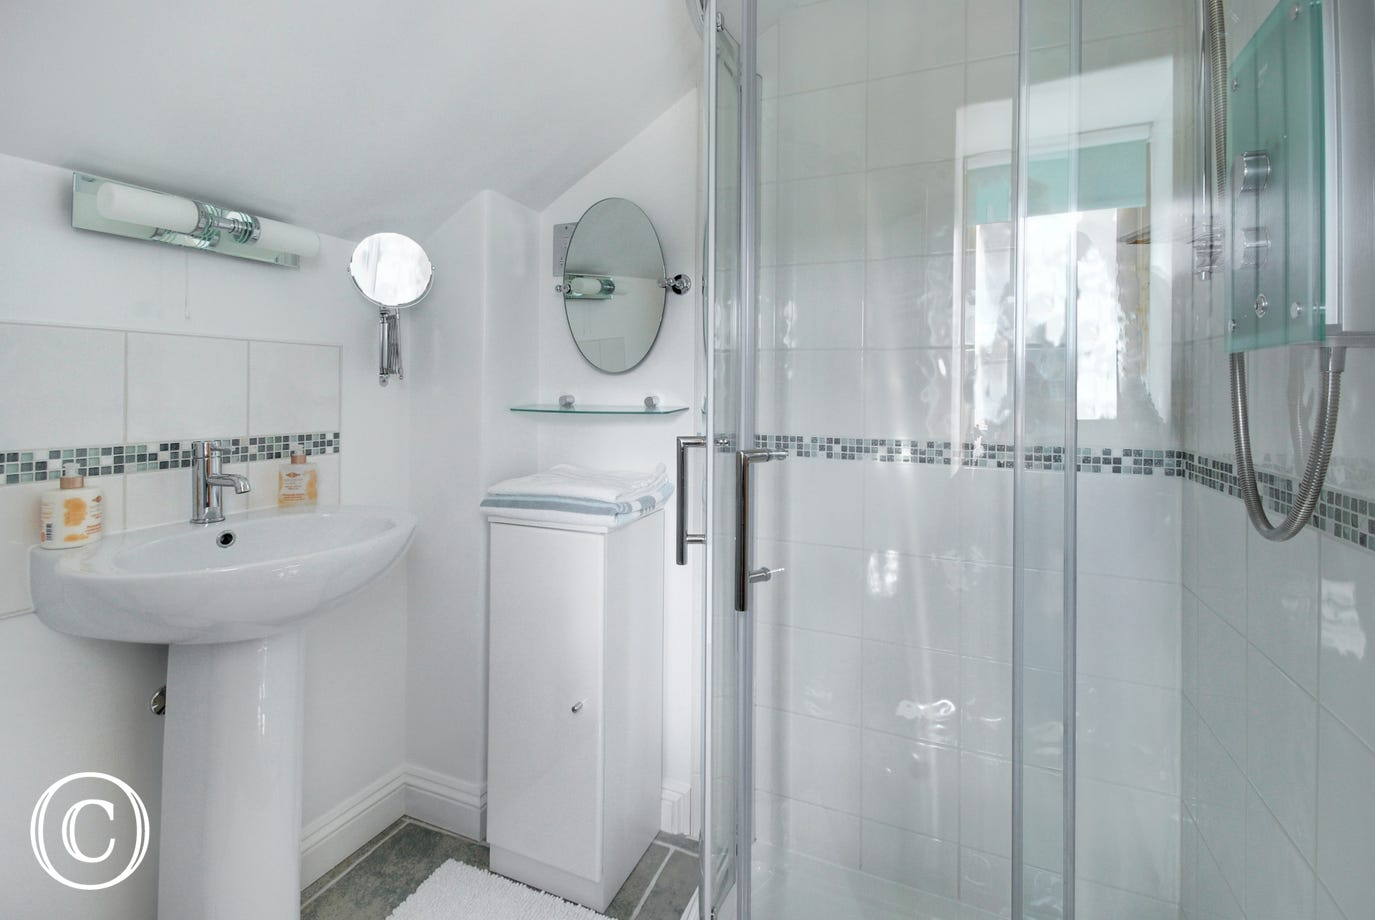 The pristine modern shower room